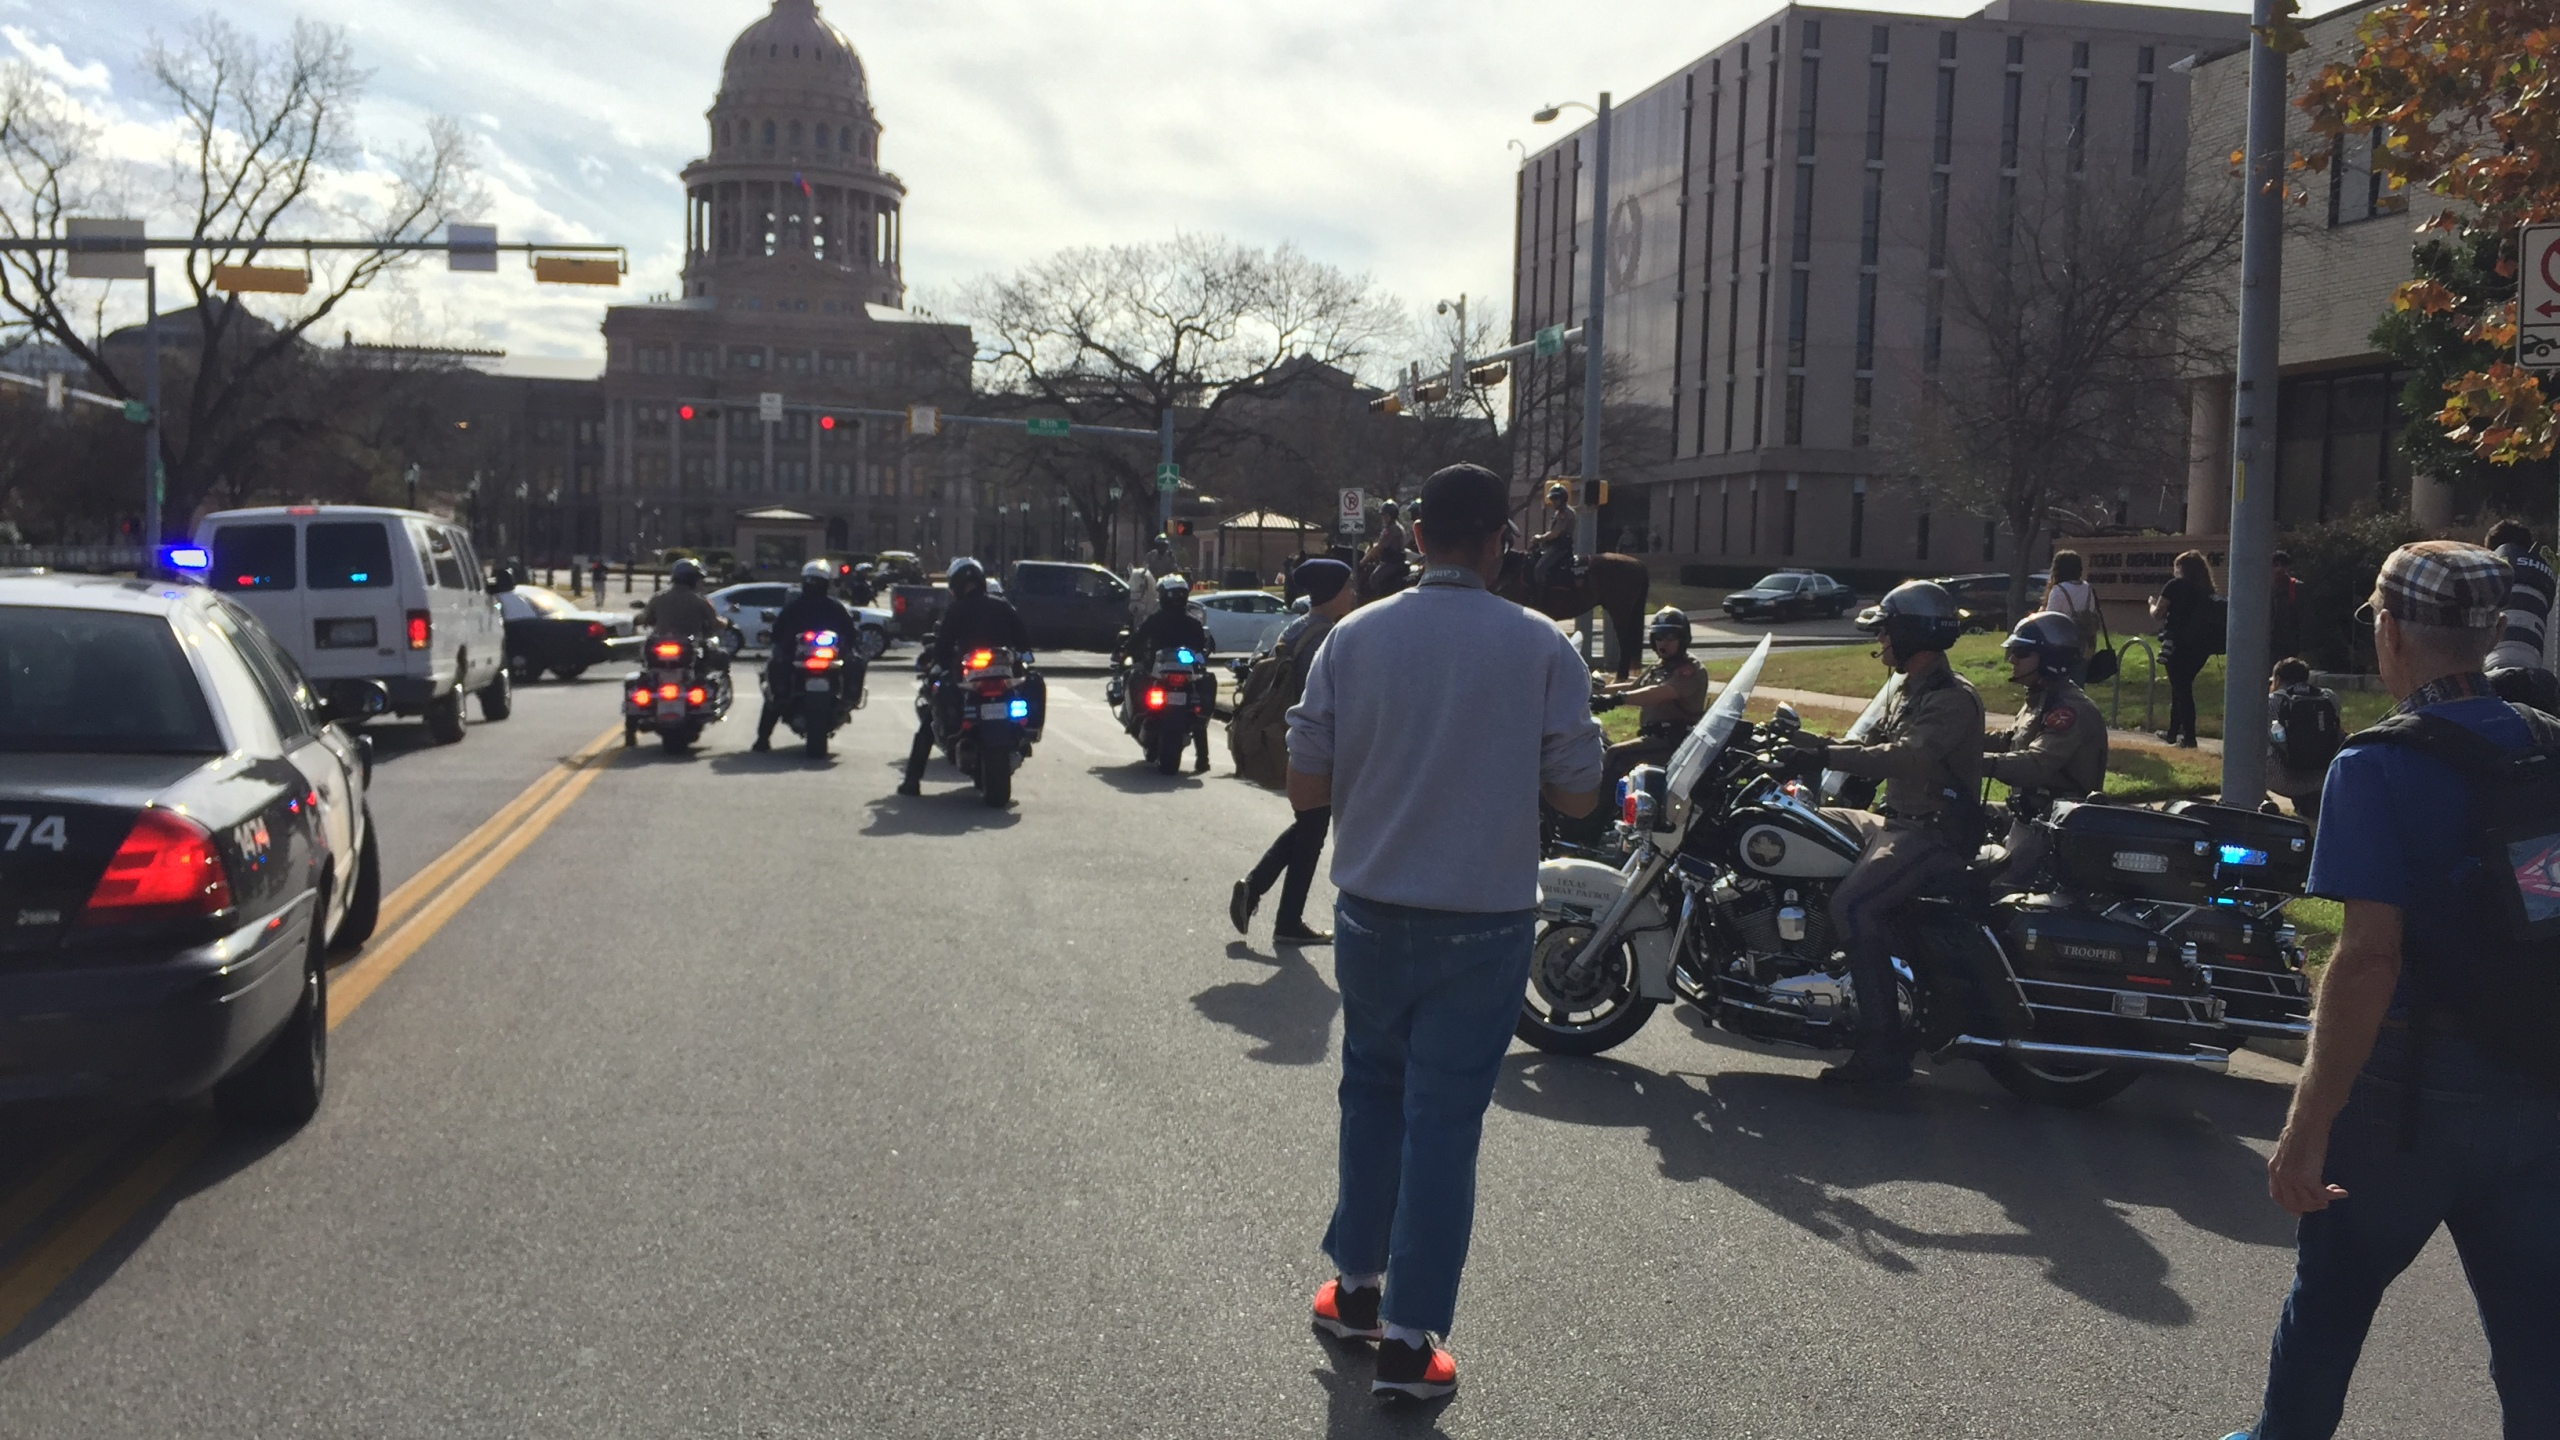 Police respond to protests in downtown Austin_402112